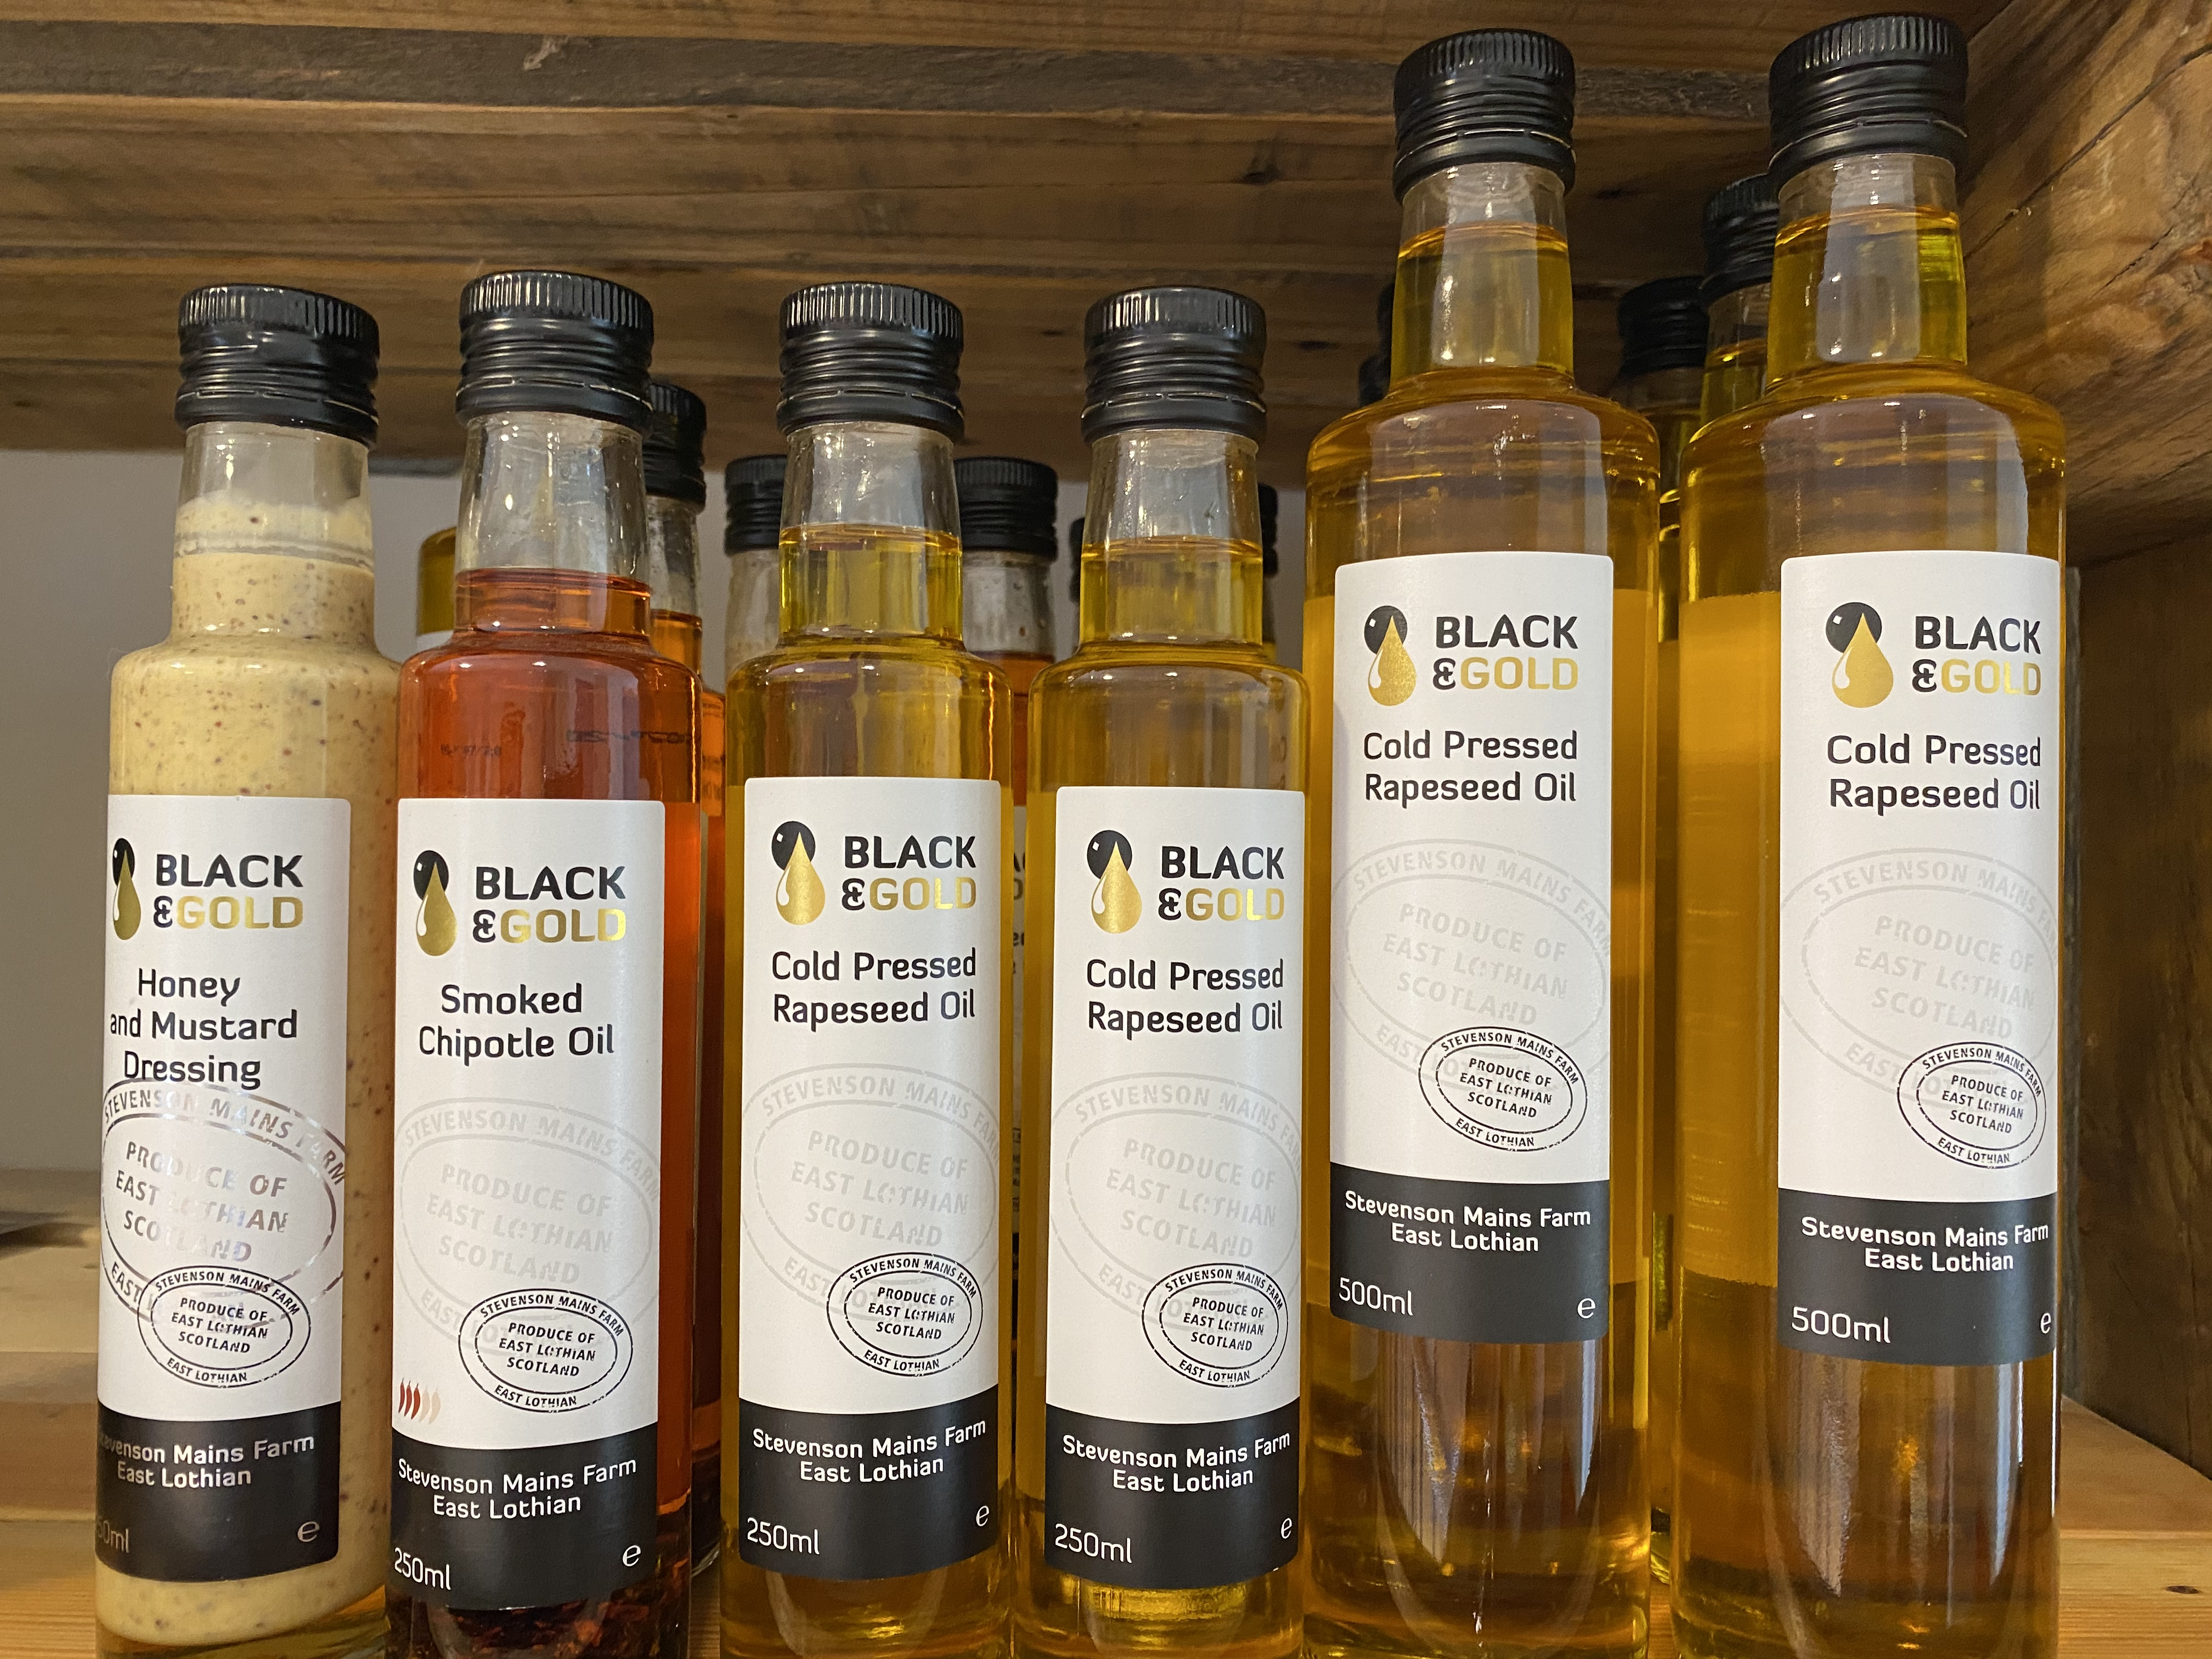 Black & Gold - Smoked Chipotle Oil